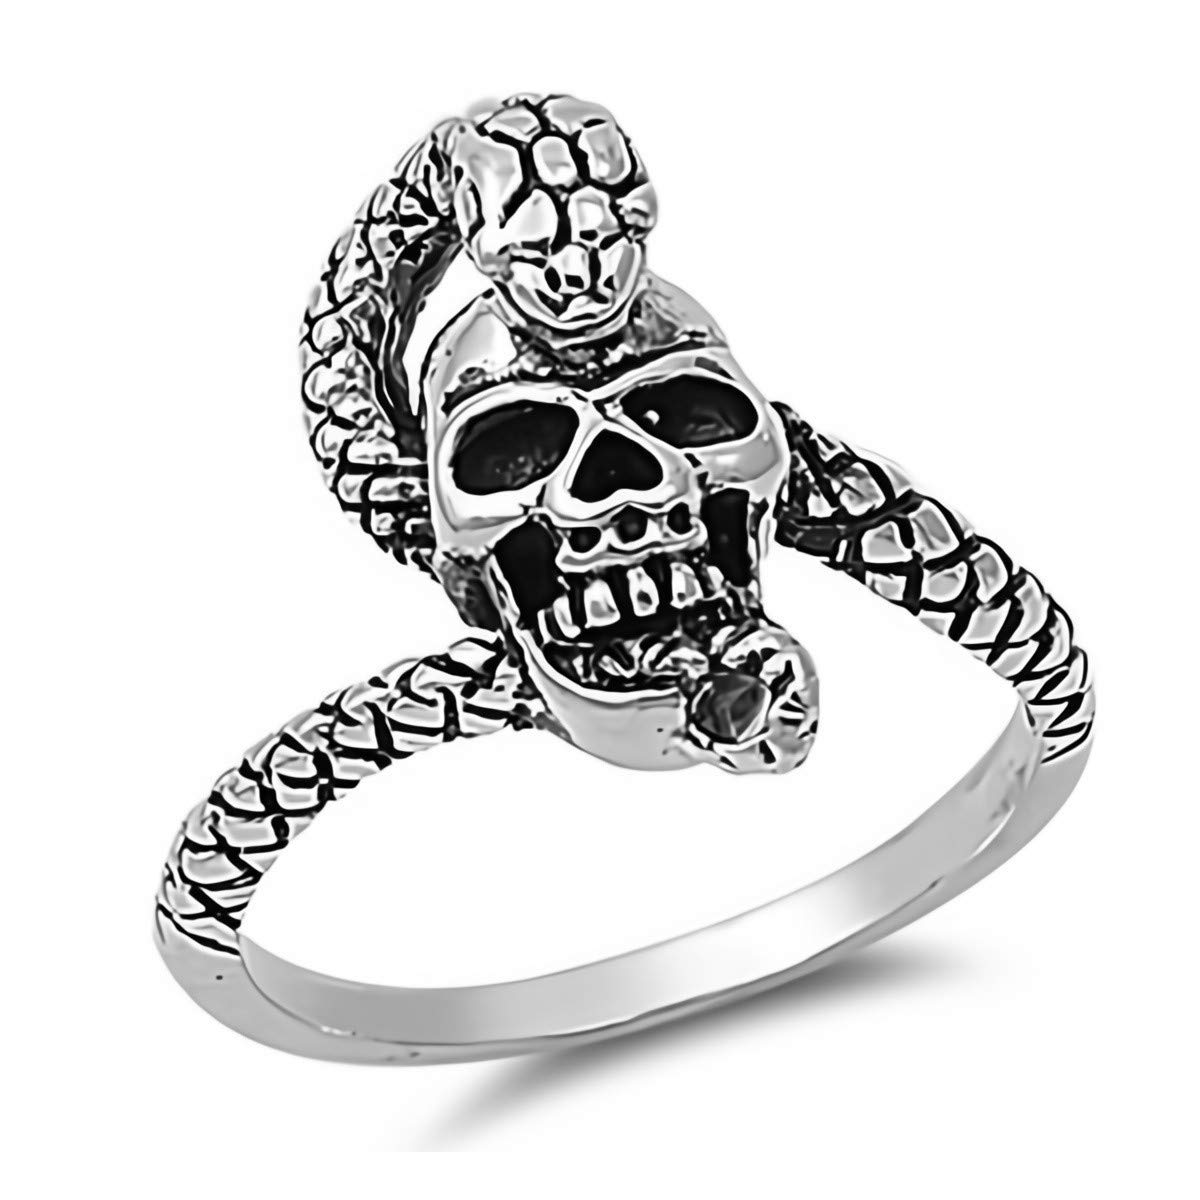 Cute Jewelry Gift for Women in Gift Box Skull /& Snake Glitzs Jewels 925 Sterling Silver Ring